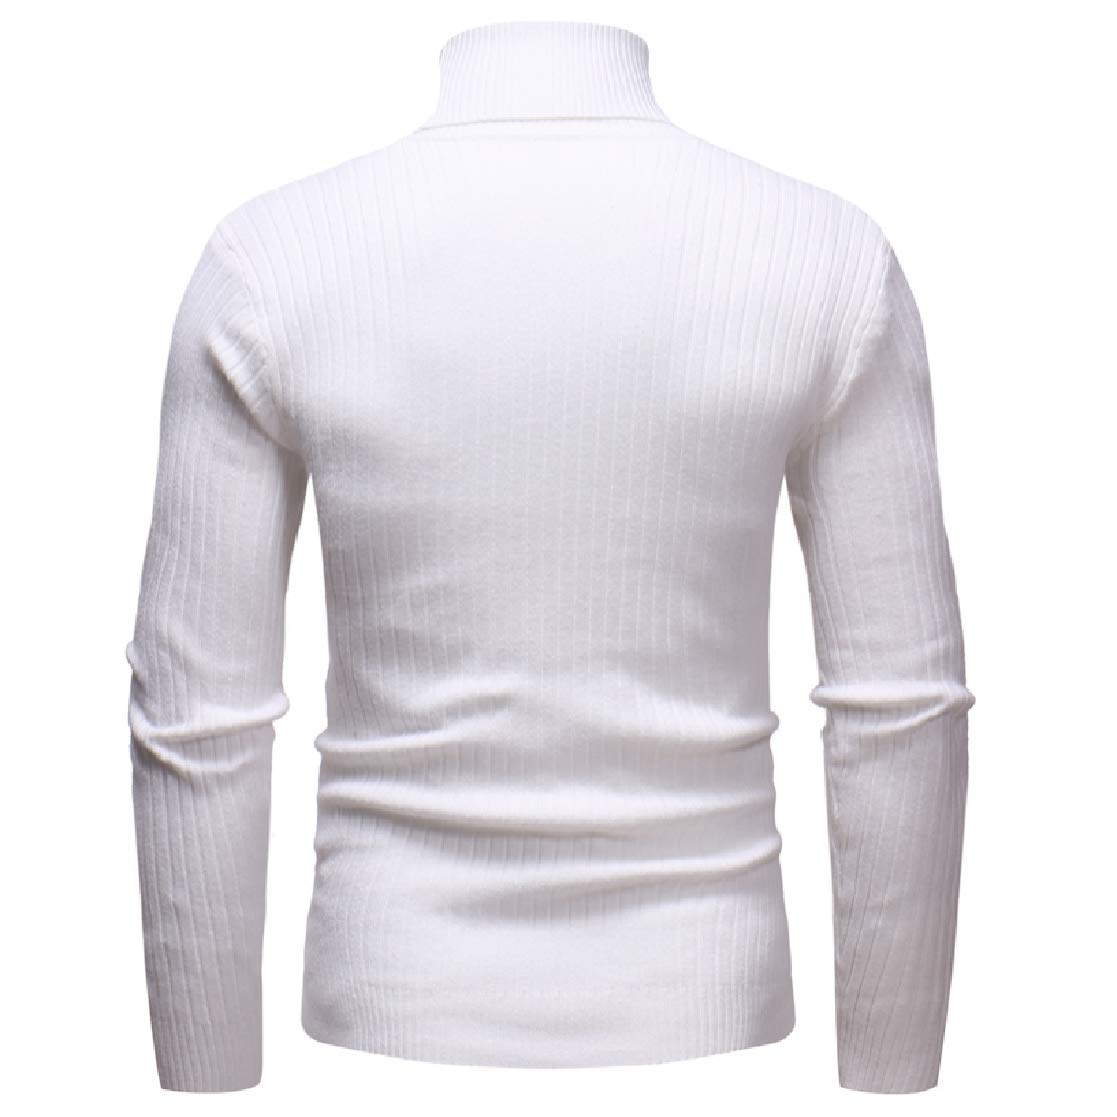 YUNY Mens Stripes Long-Sleeve High Neck Pure Knitting Pullover Sweaters White L